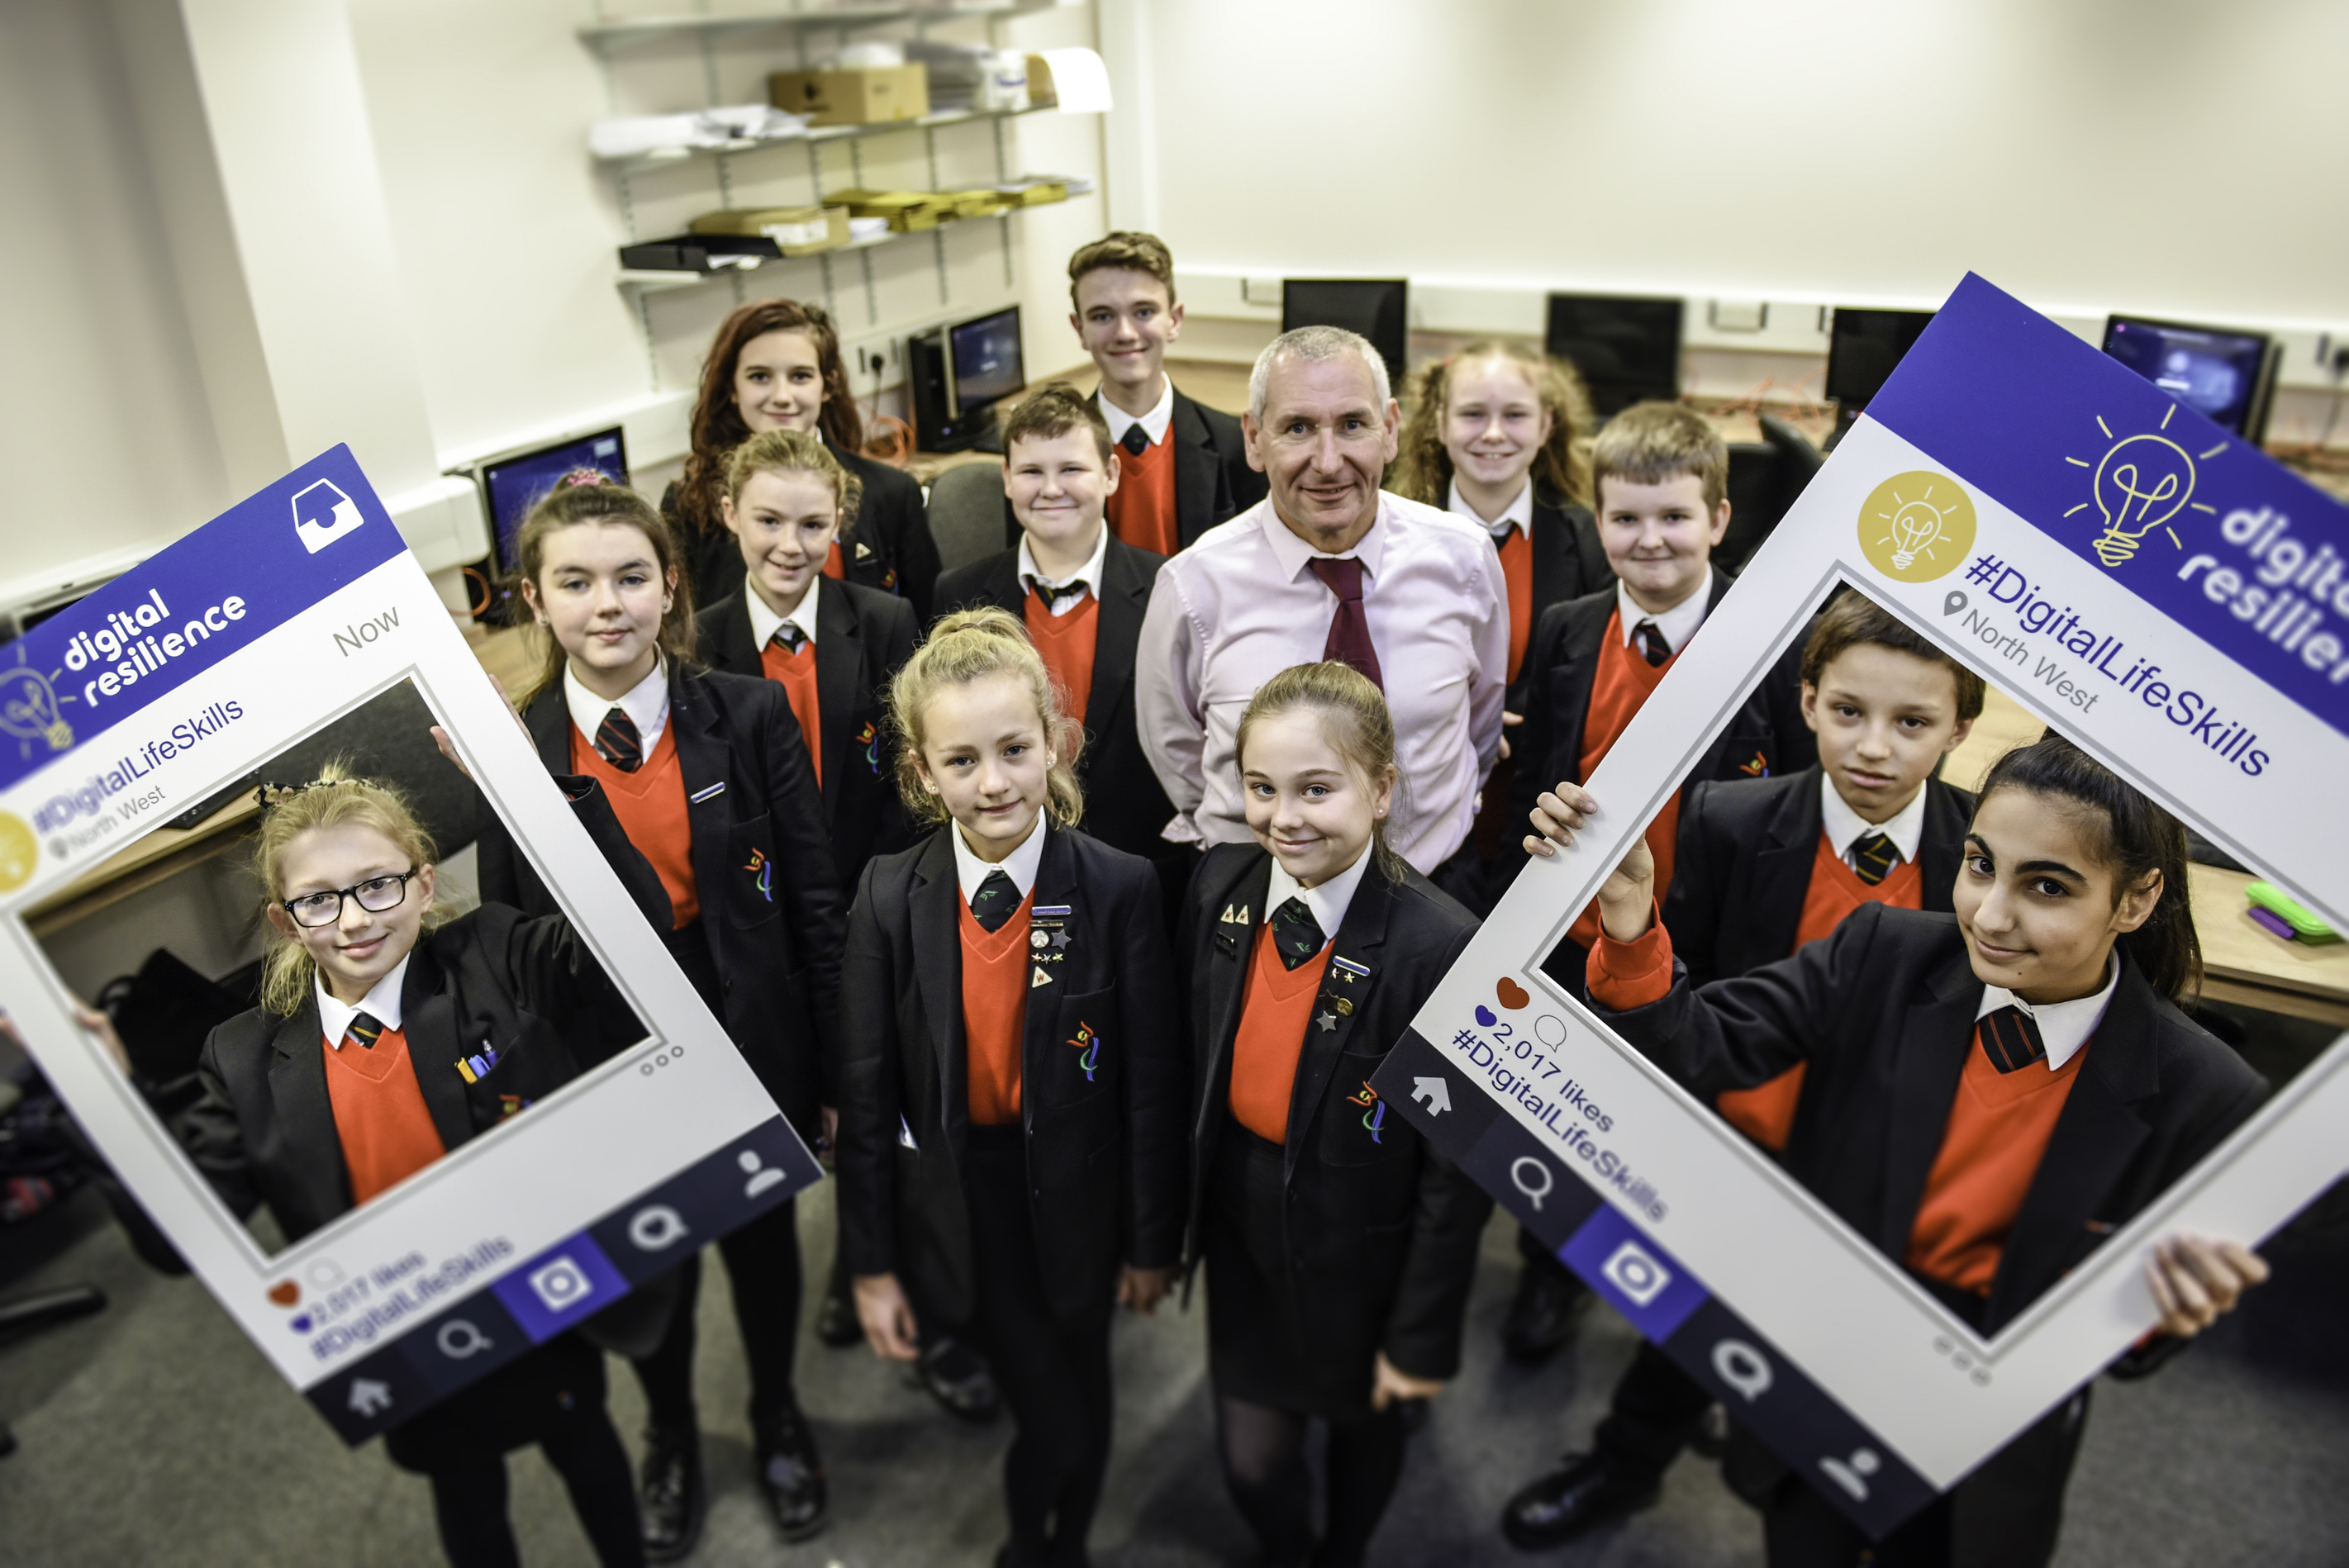 Stockport students are digitally savvy thanks to online life skills workshops